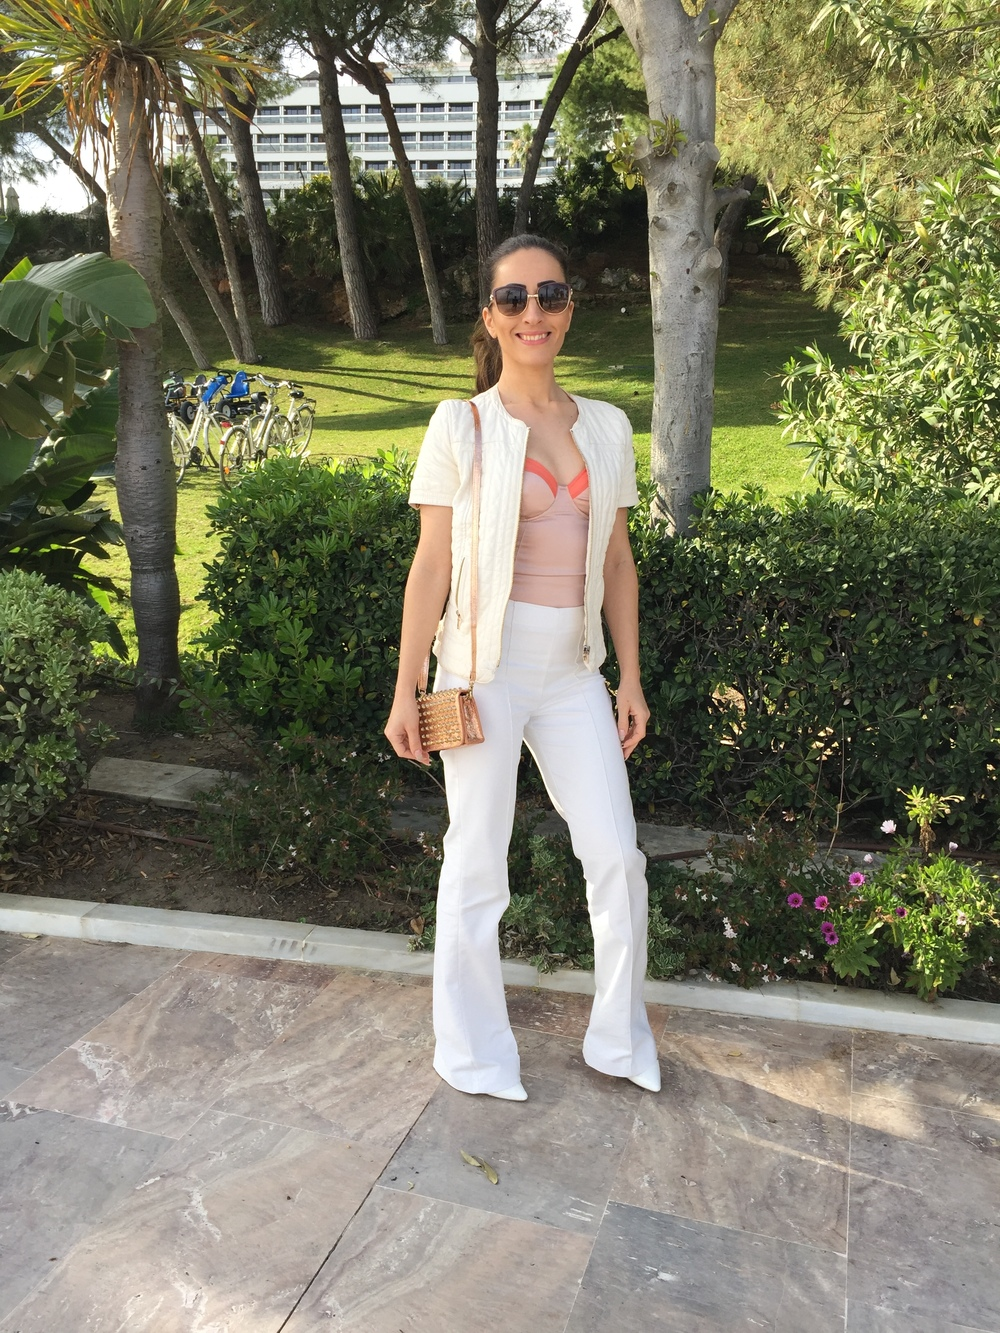 coral-satin-top-white-pants-outfit-marbella